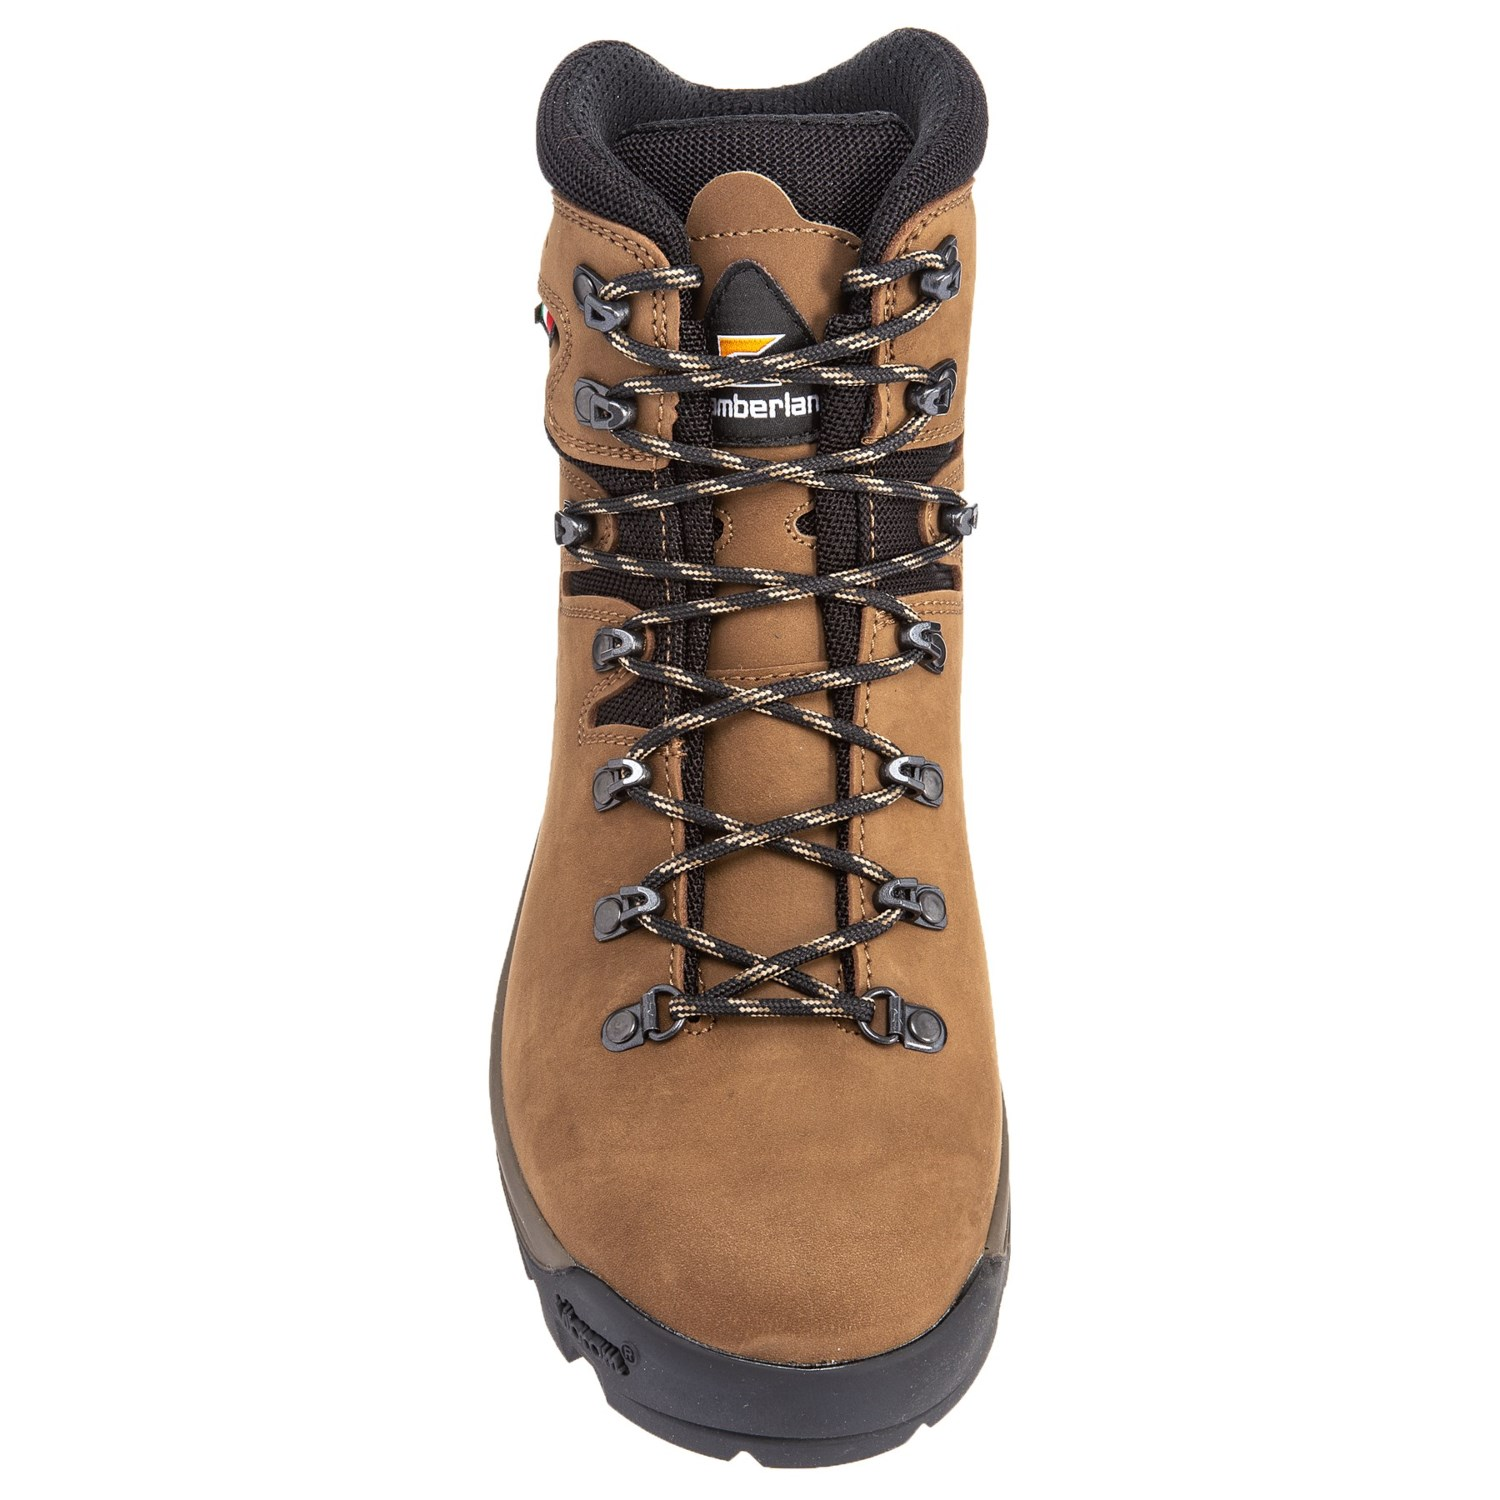 Zamberlan Made In Italy Duran Gore Tex Hiking Boots For Men